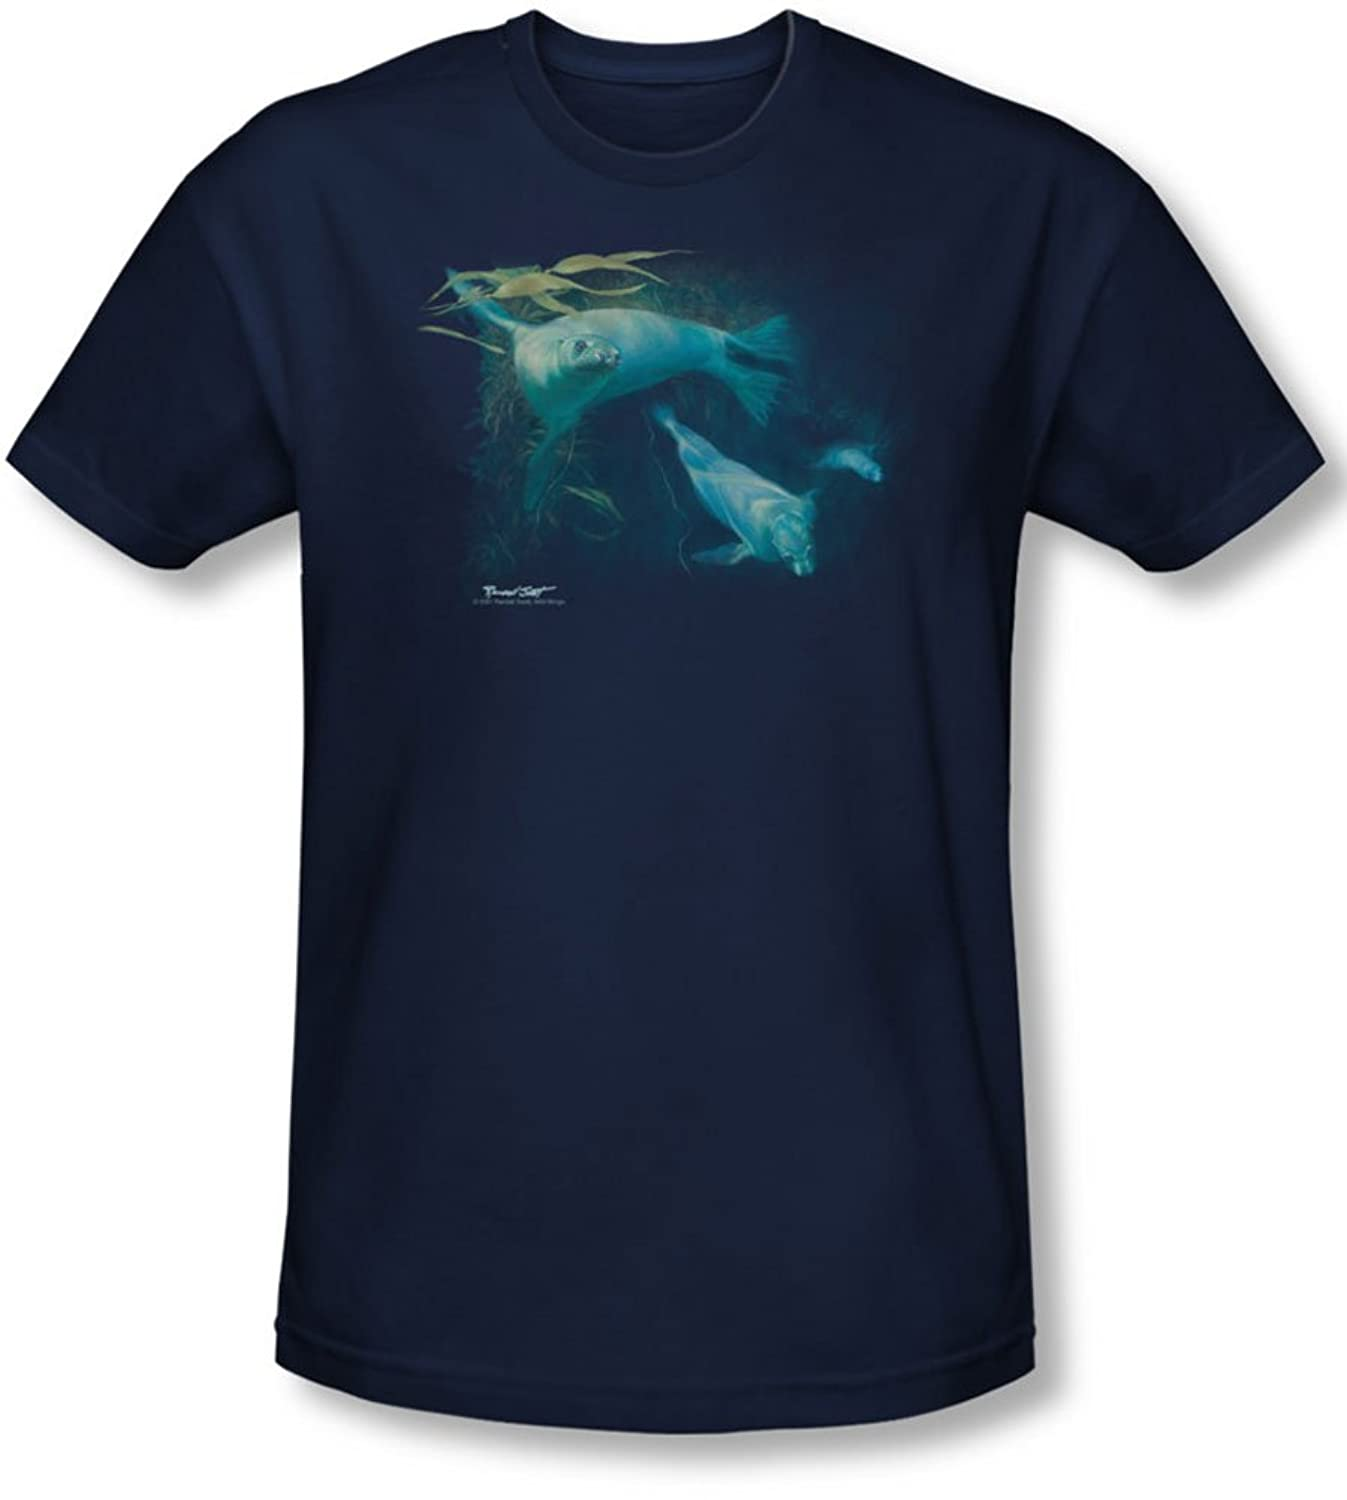 Wildlife - Mens Kelp Patrol Slim Fit T-Shirt